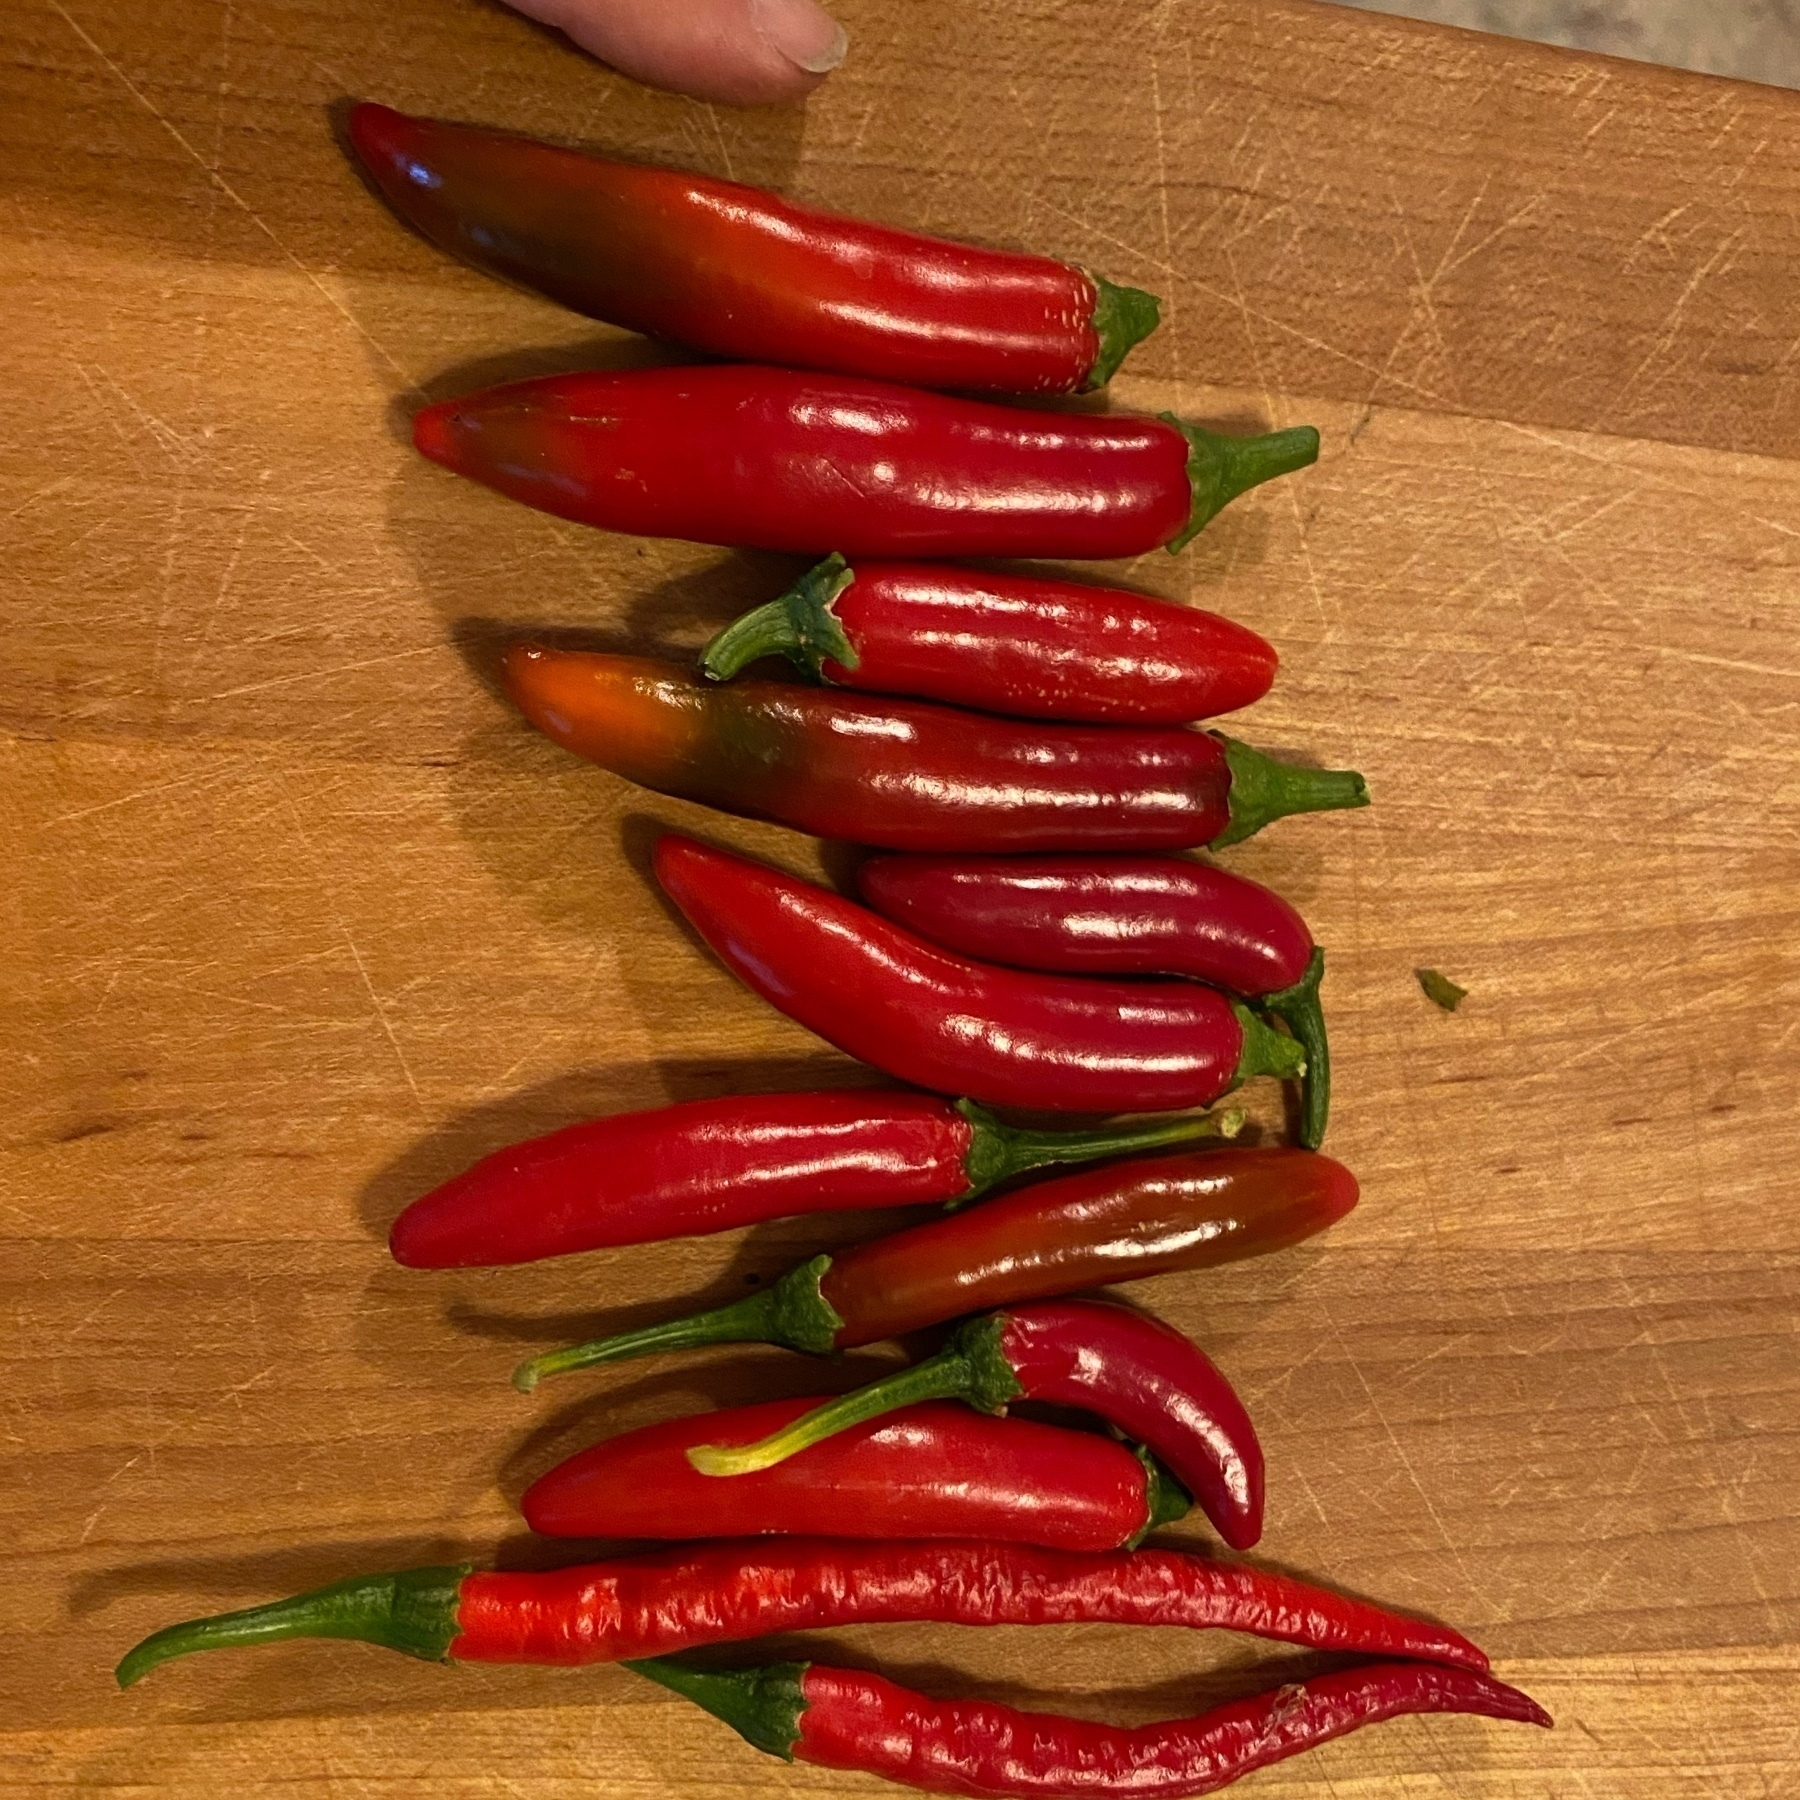 harvested ripe peppers, super shiny and red